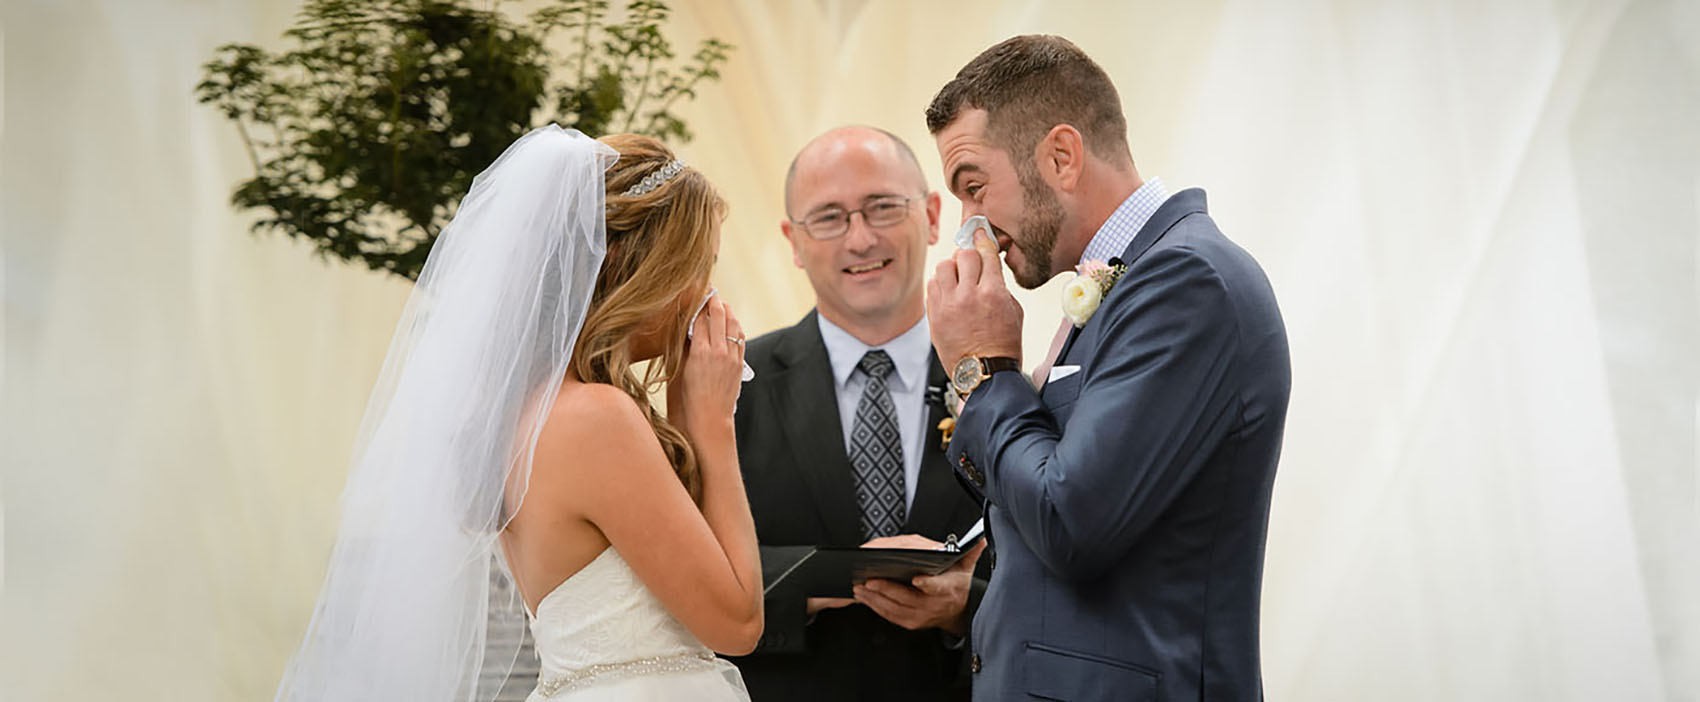 A bride and groom wipe their noses with tissue during their wedding ceremony the Wyche Pavilion in Greenville, SC.